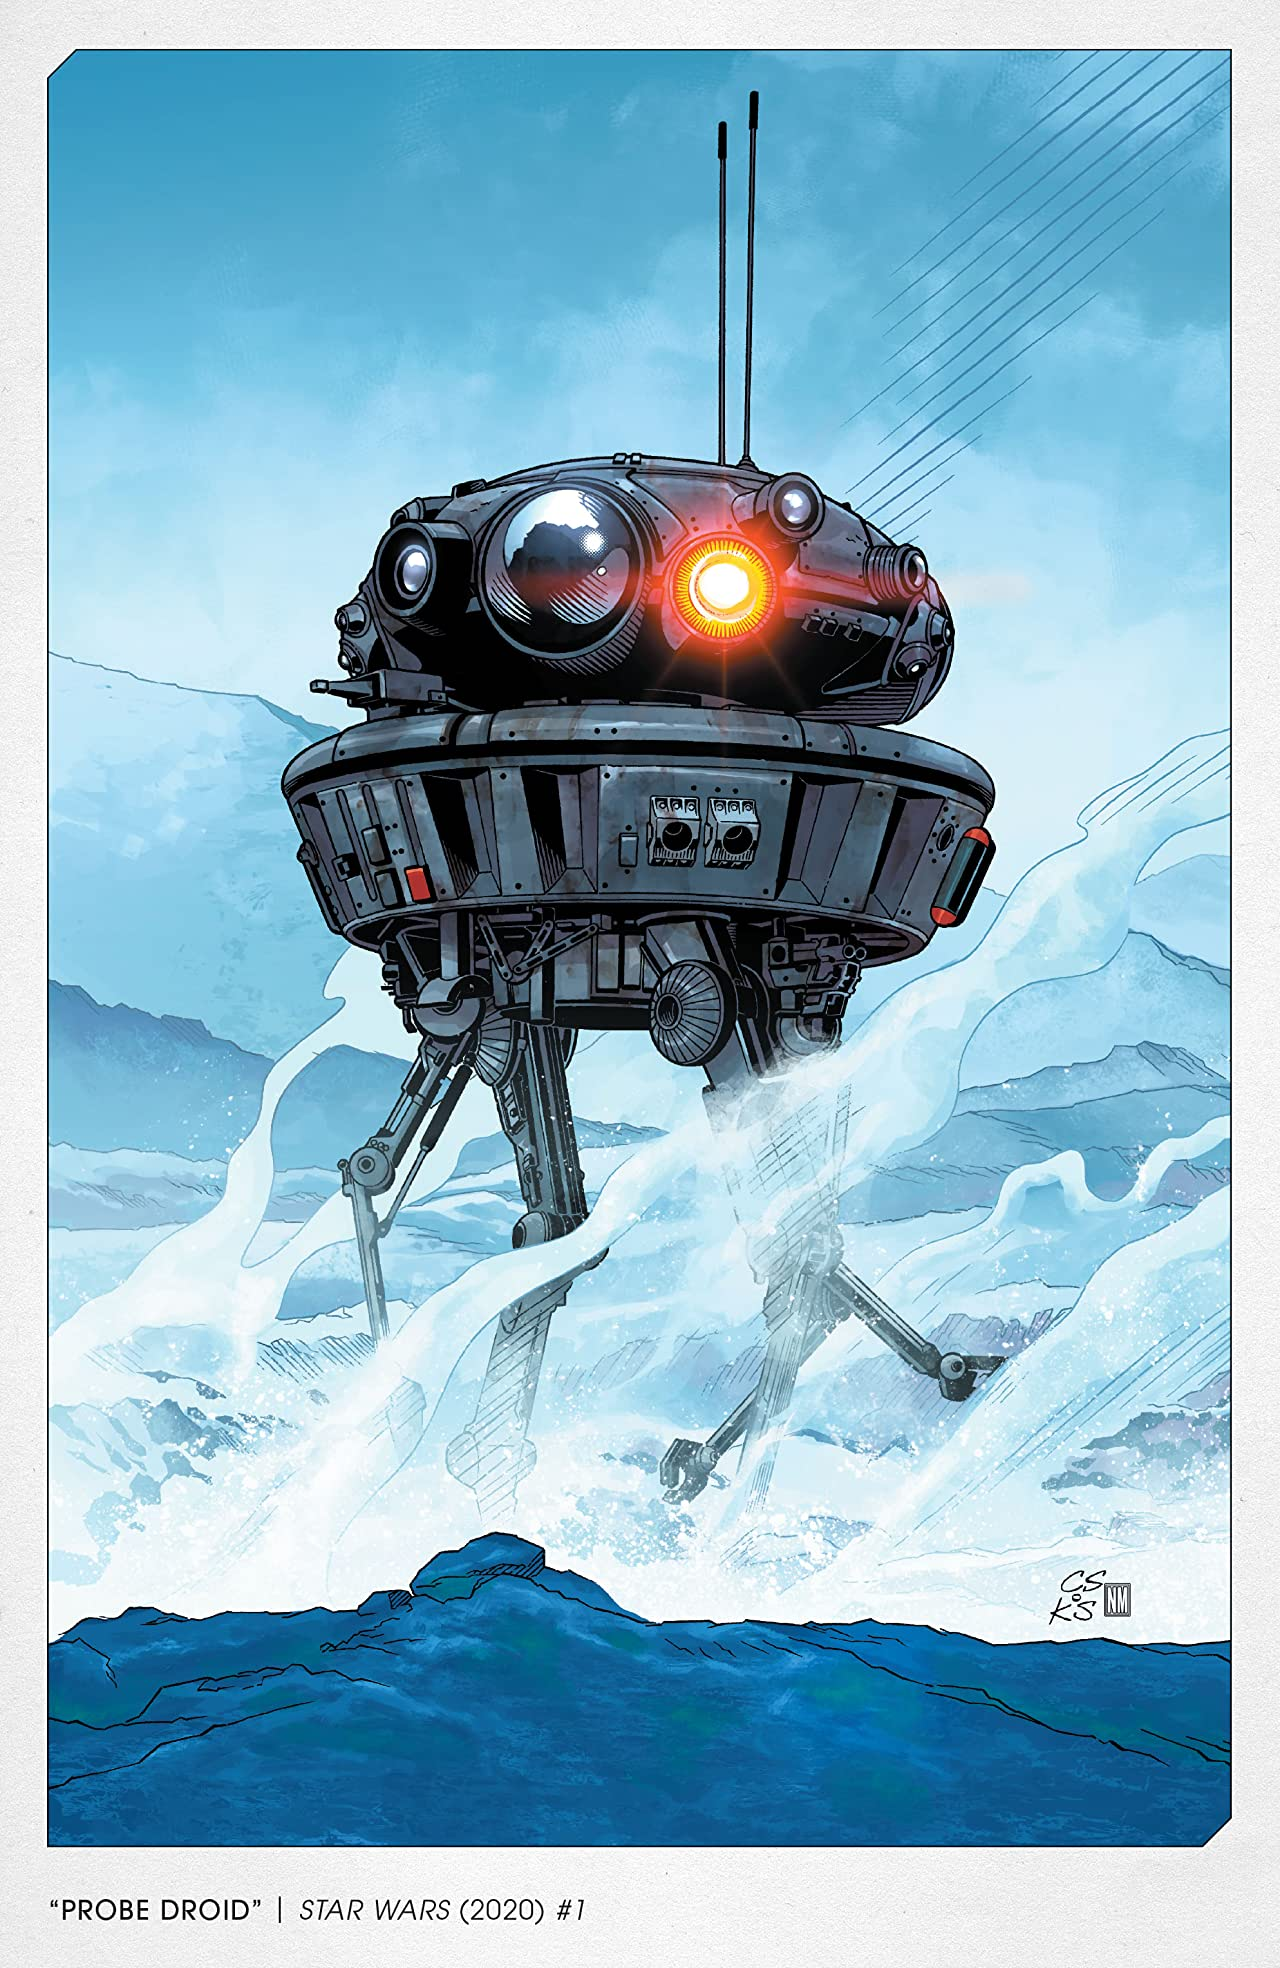 Star Wars: The Empire Strikes Back - The 40th Anniversary Covers by Chris Sprouse (2021) No.1